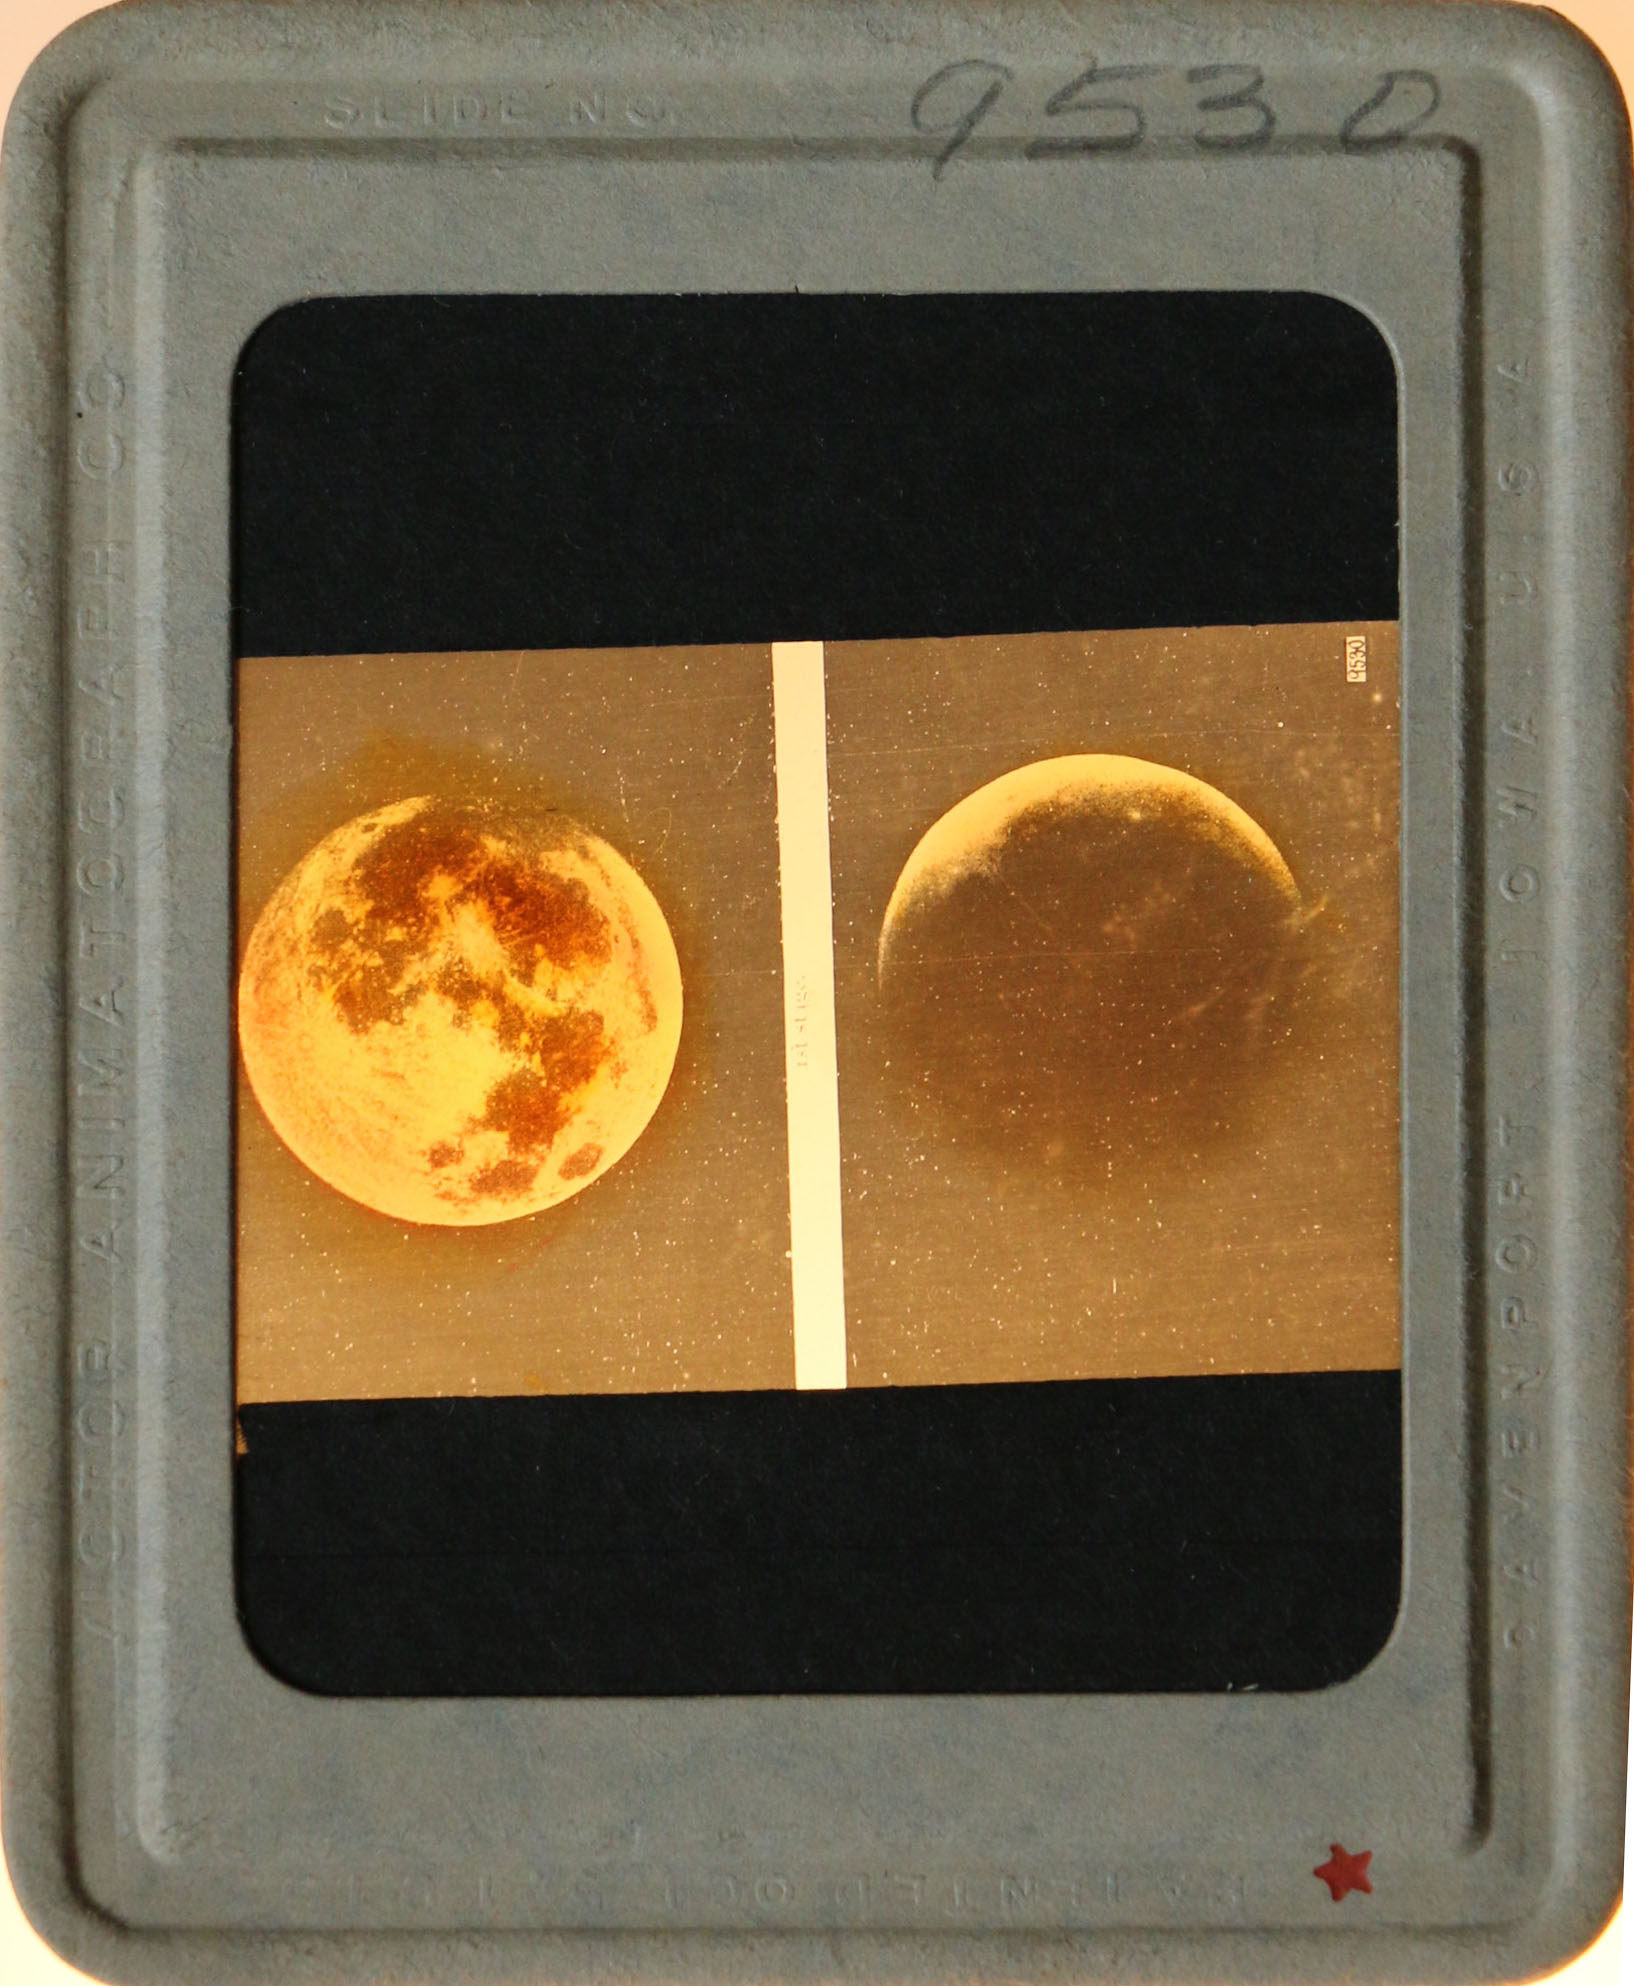 Slide showing the moon